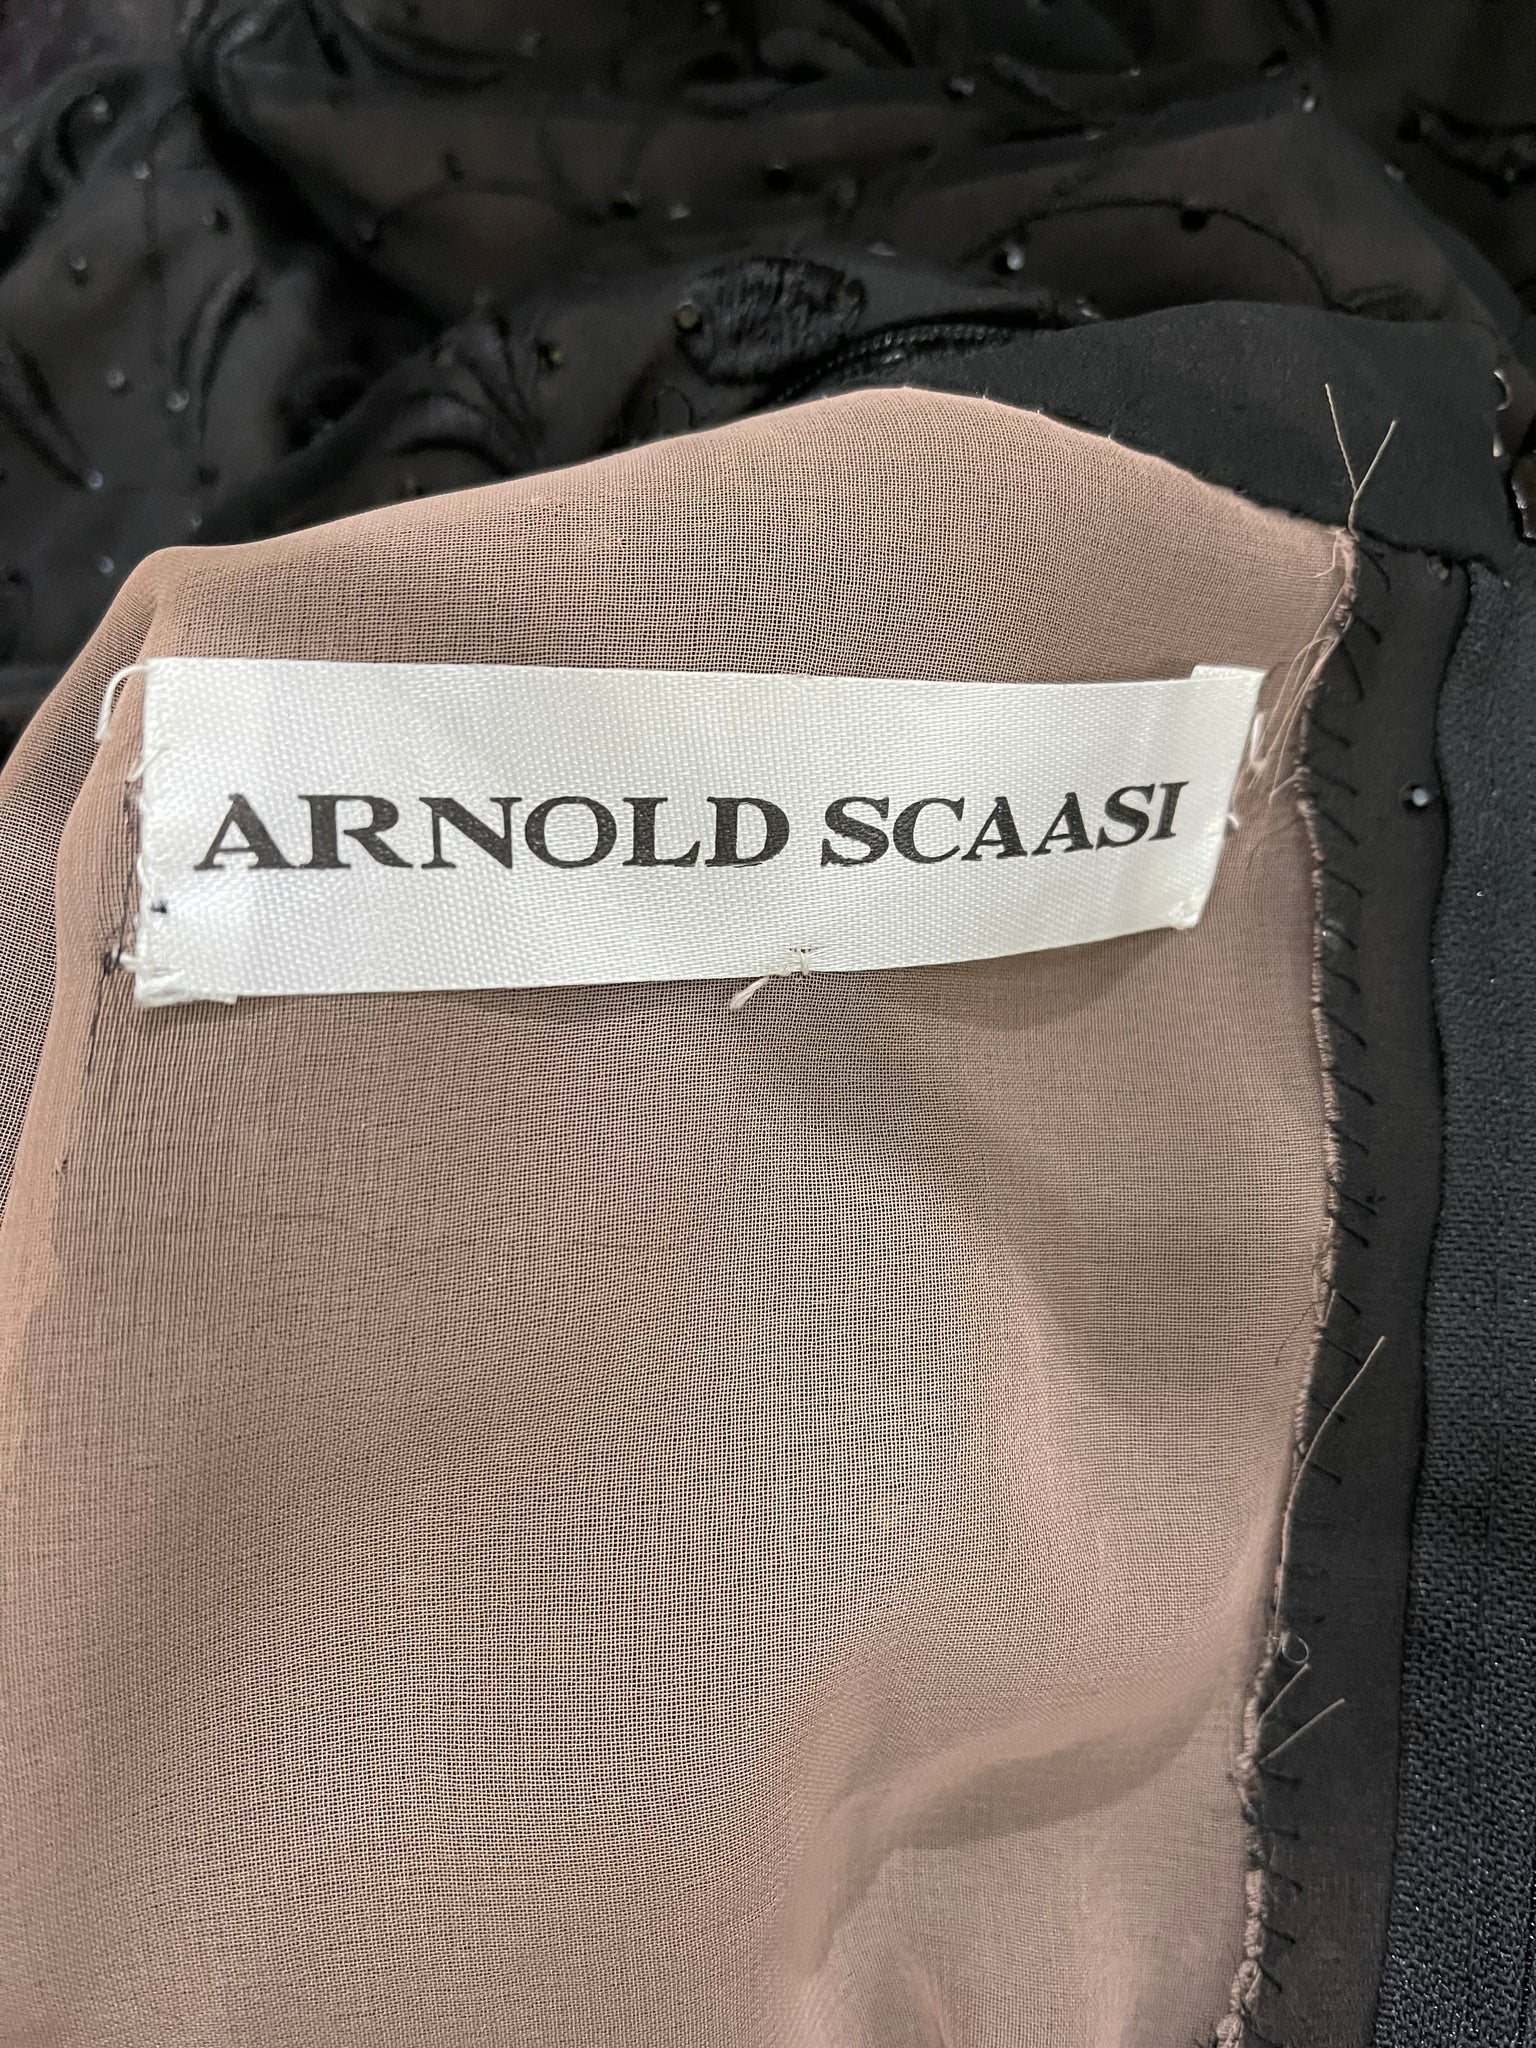 Arnold Scaasi 80s dress Black Chiffon Beaded and Embroidered Sexy Sheath LABEL 4 of 4